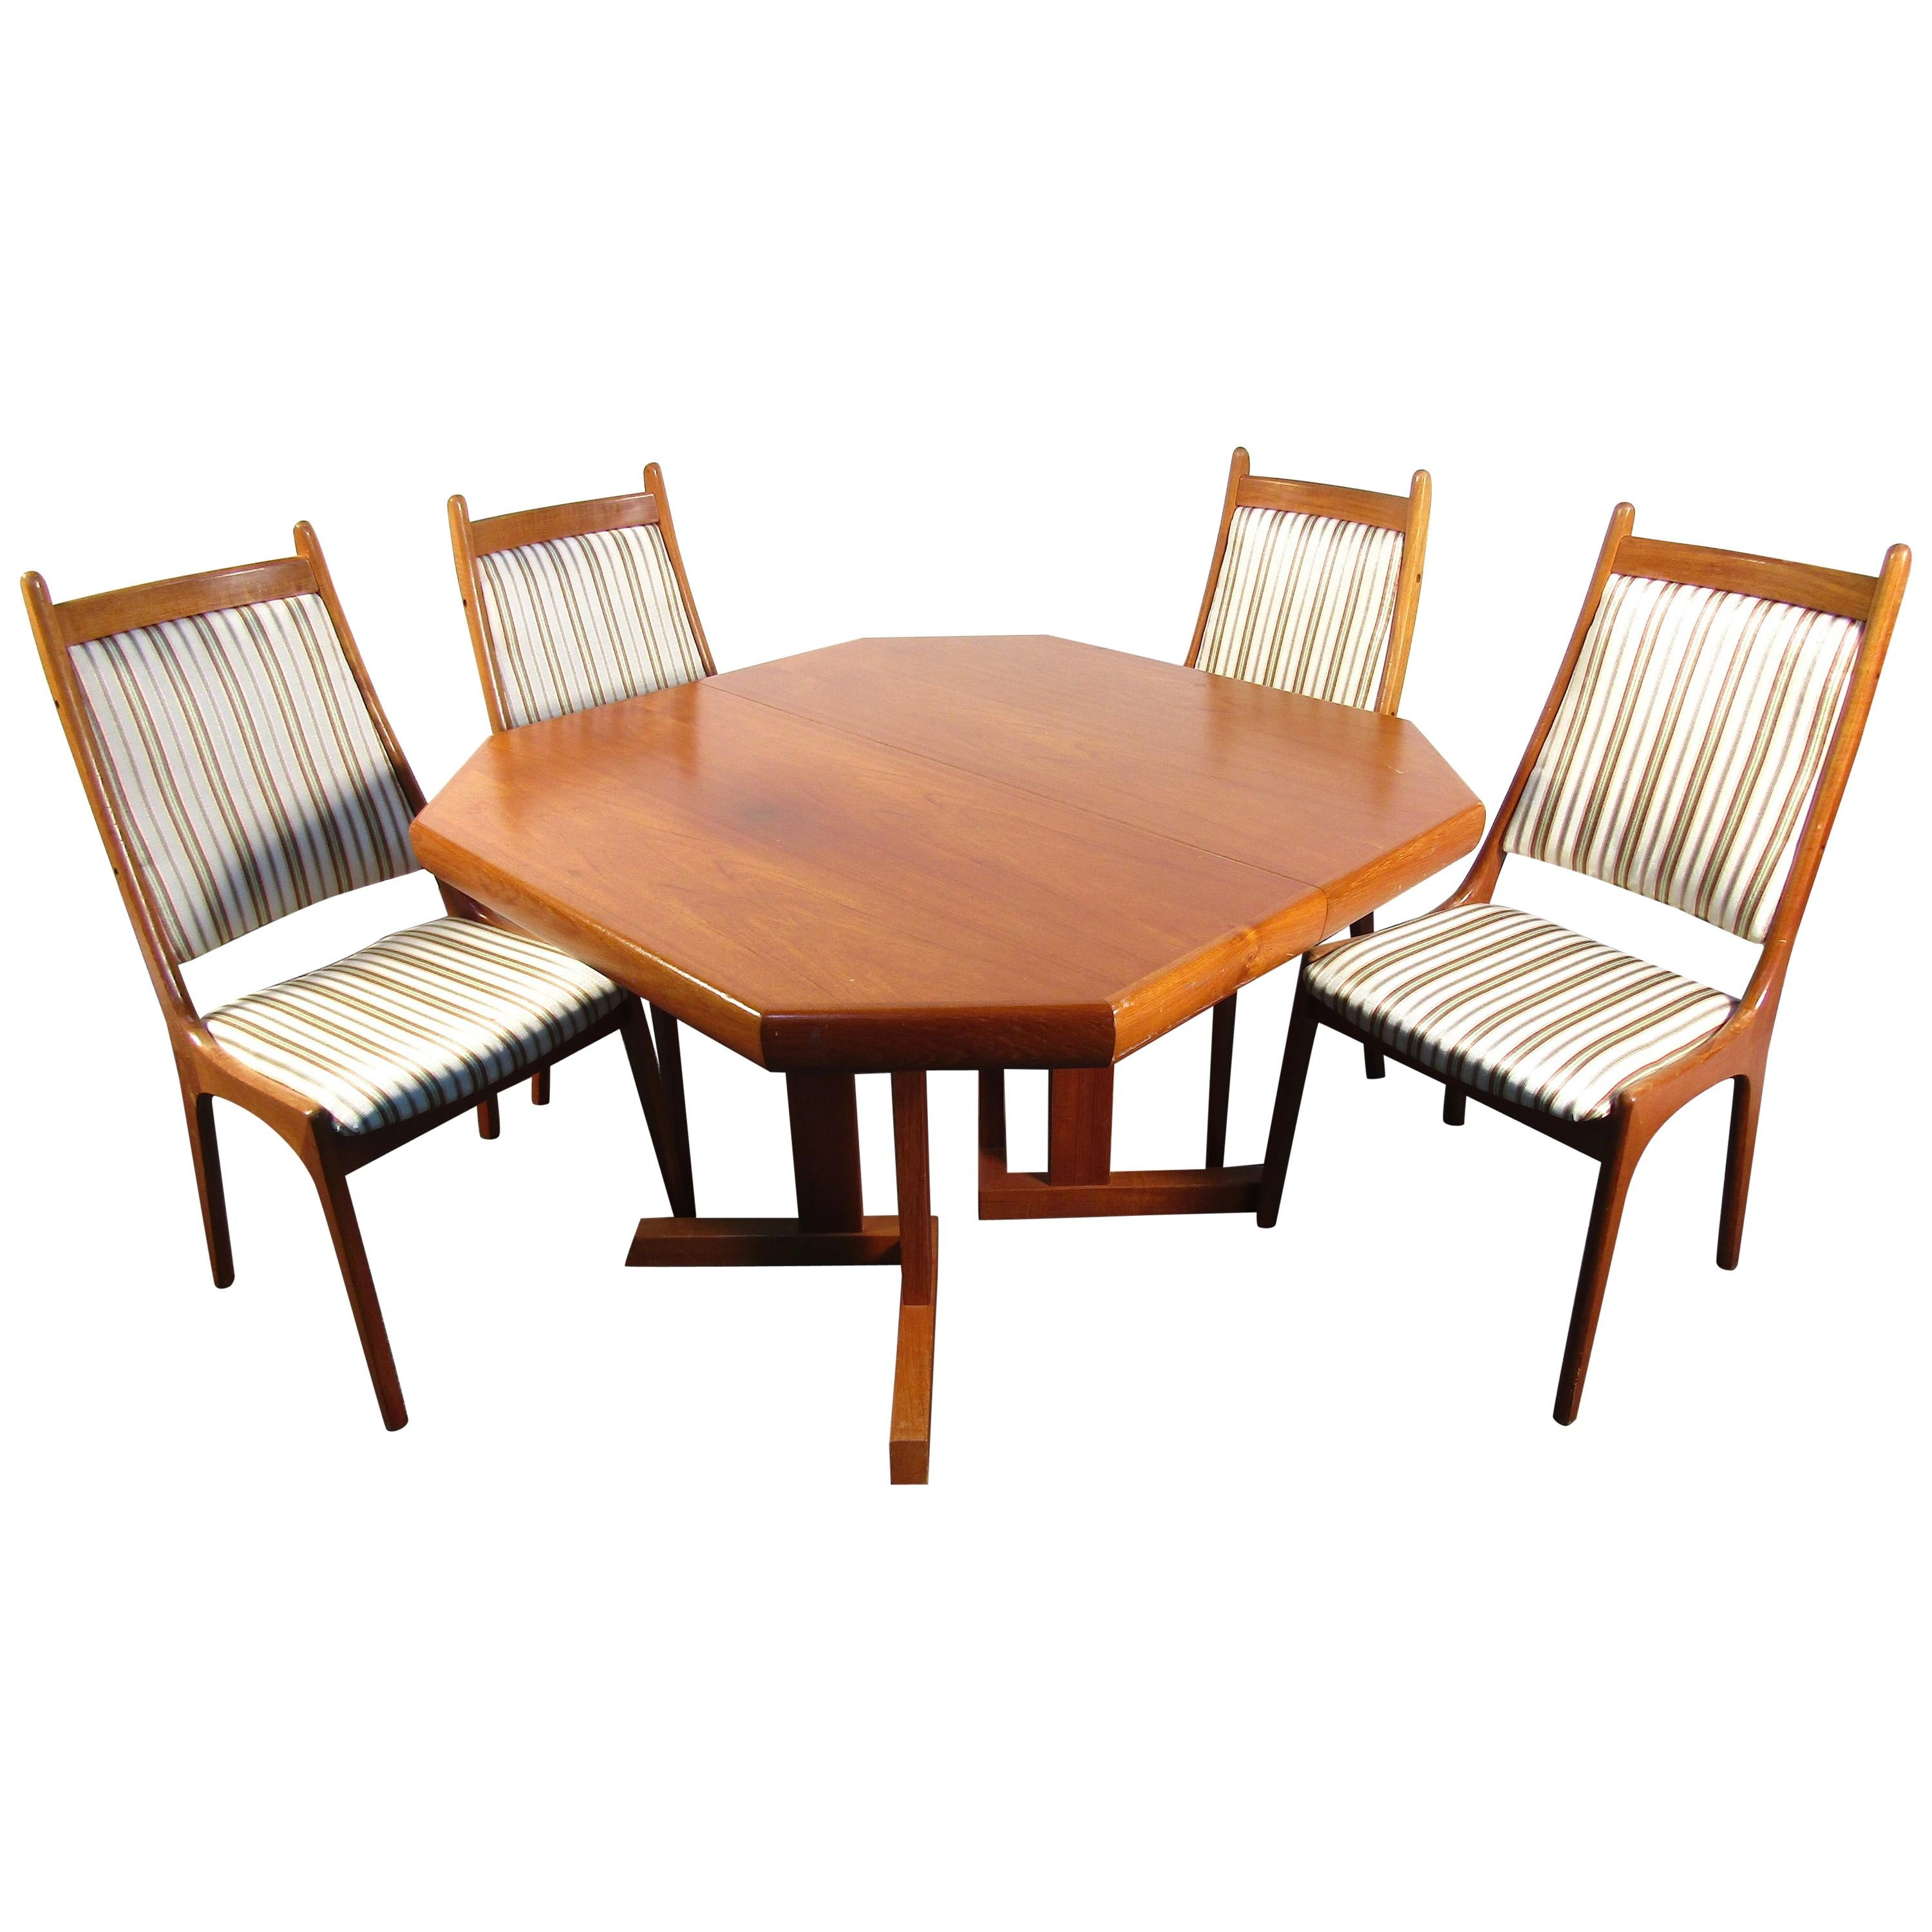 Mid-Century Danish Teak Dining Set with Four Chairs